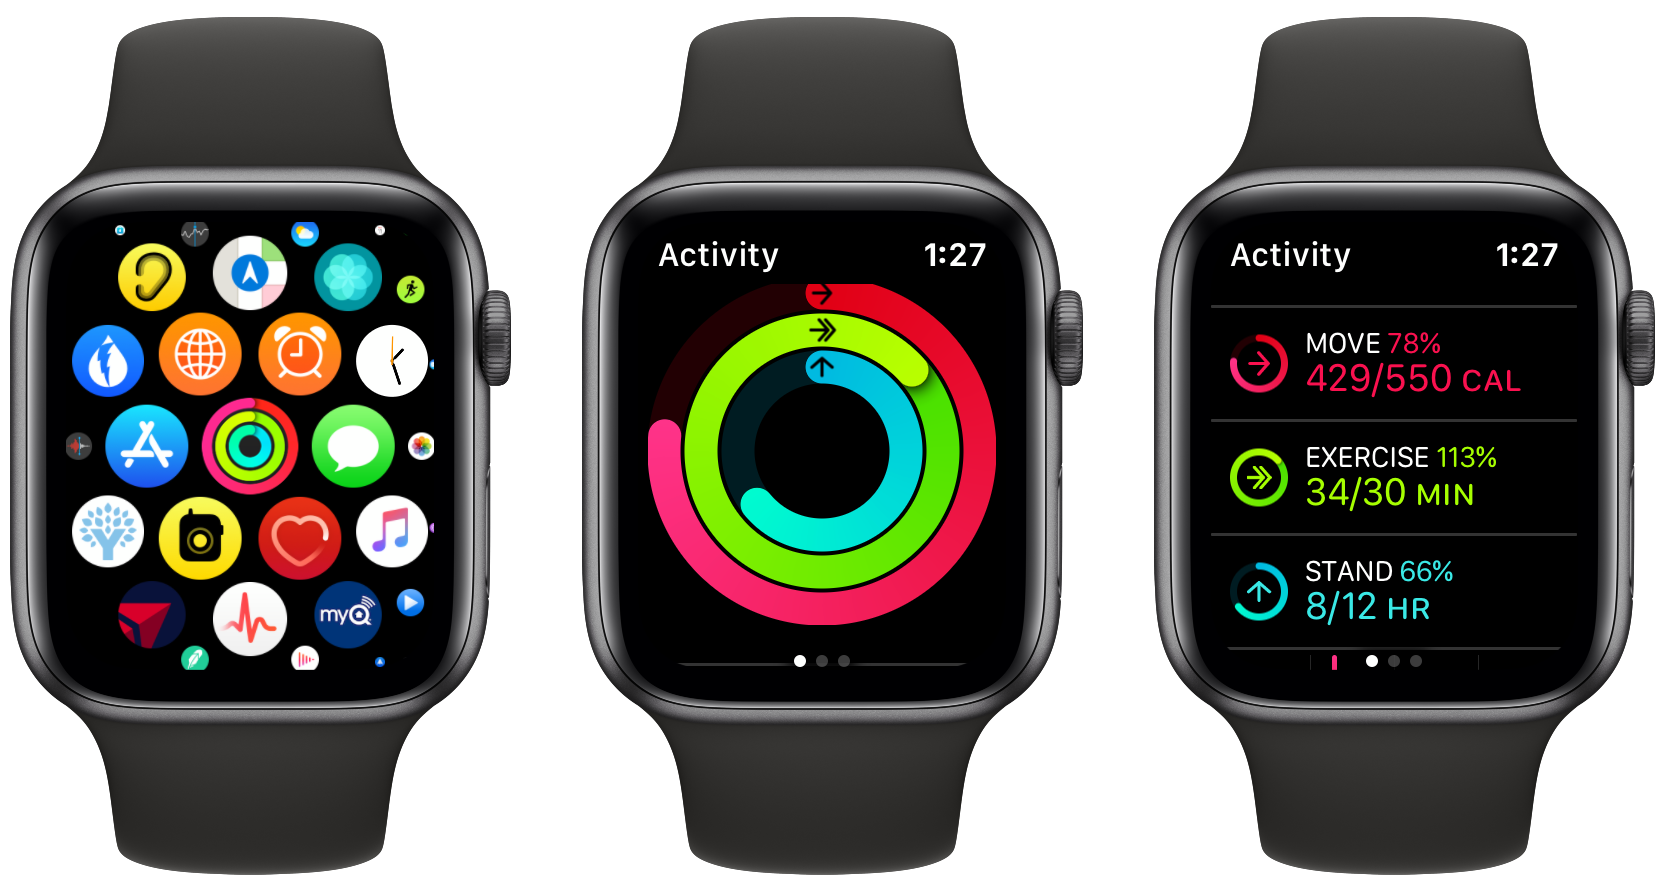 How to see Apple Watch calories burned, active and passive walkthrough